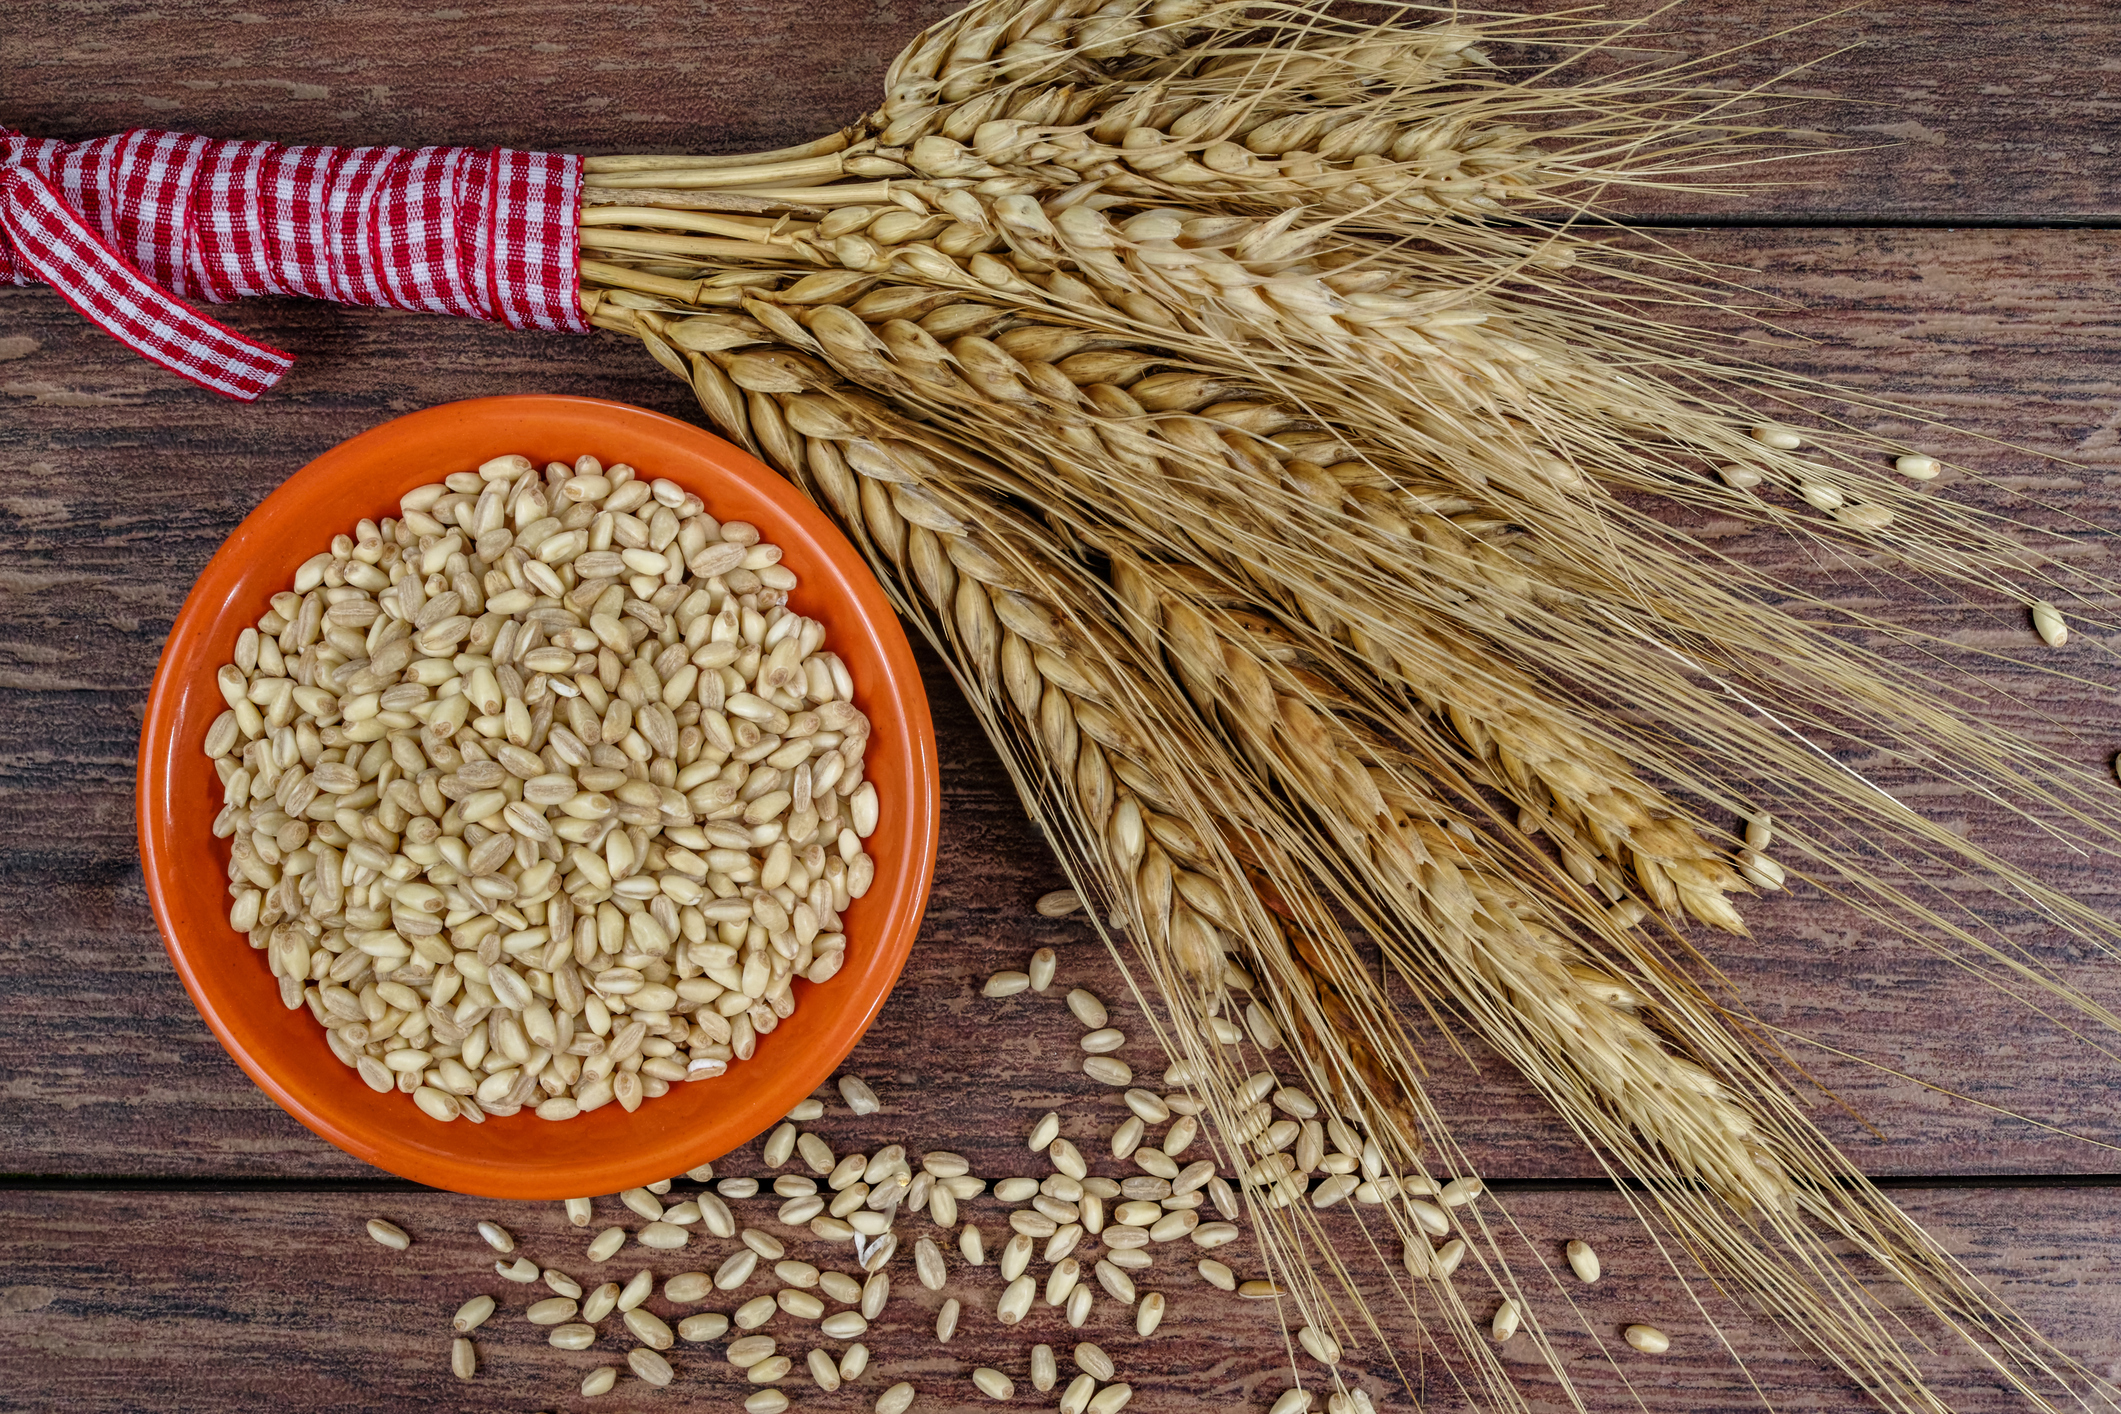 Whole Grains 101: The Miracle Food